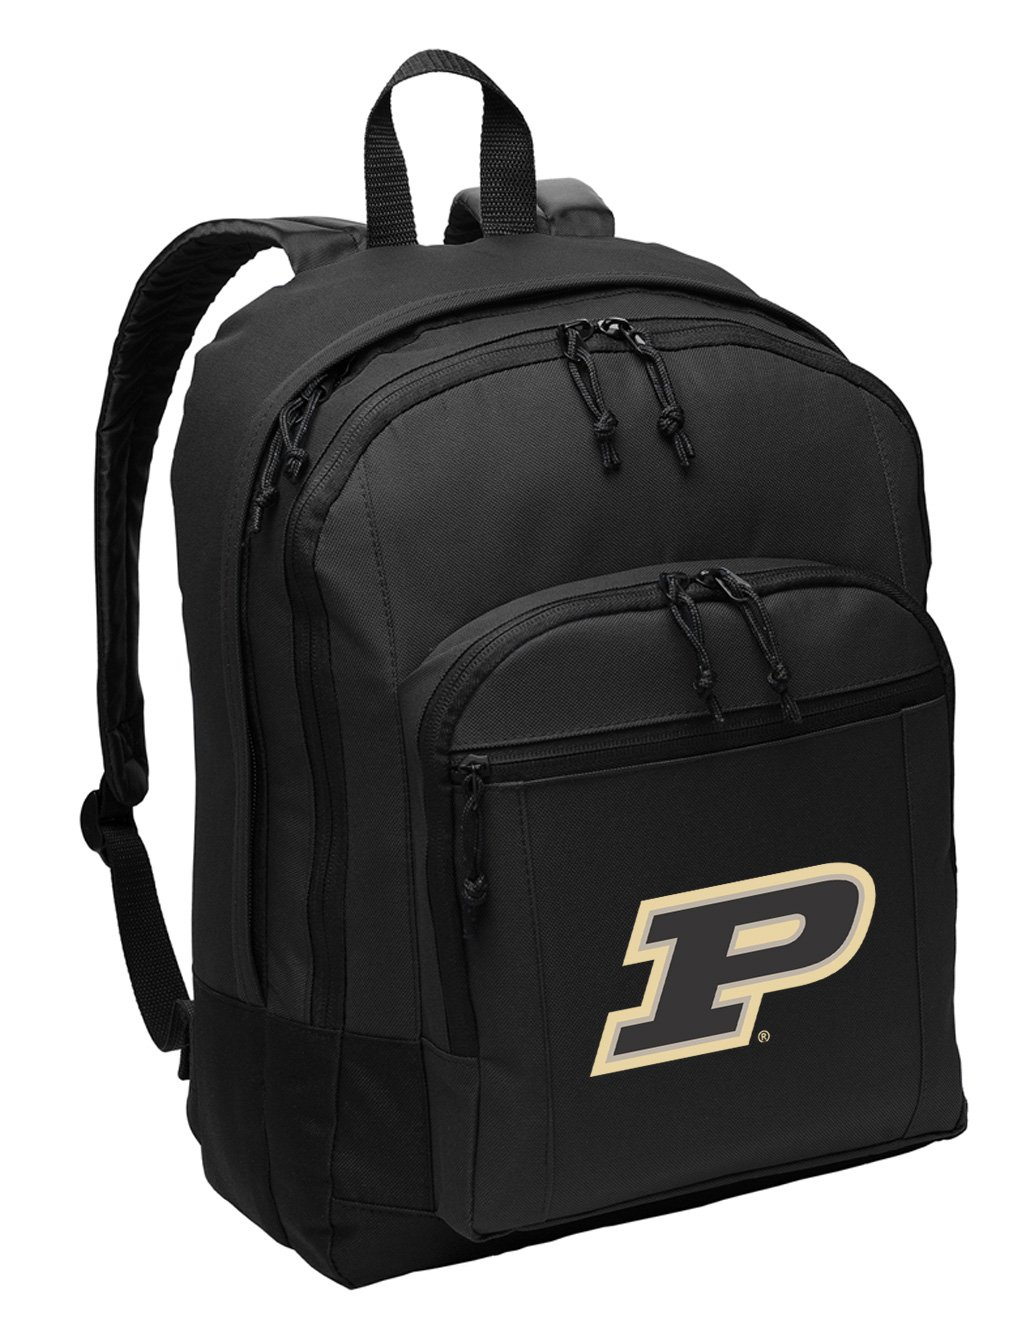 Broad Bay Purdue University Backpack CLASSIC STYLE Purdue Backpack Laptop Sleeve